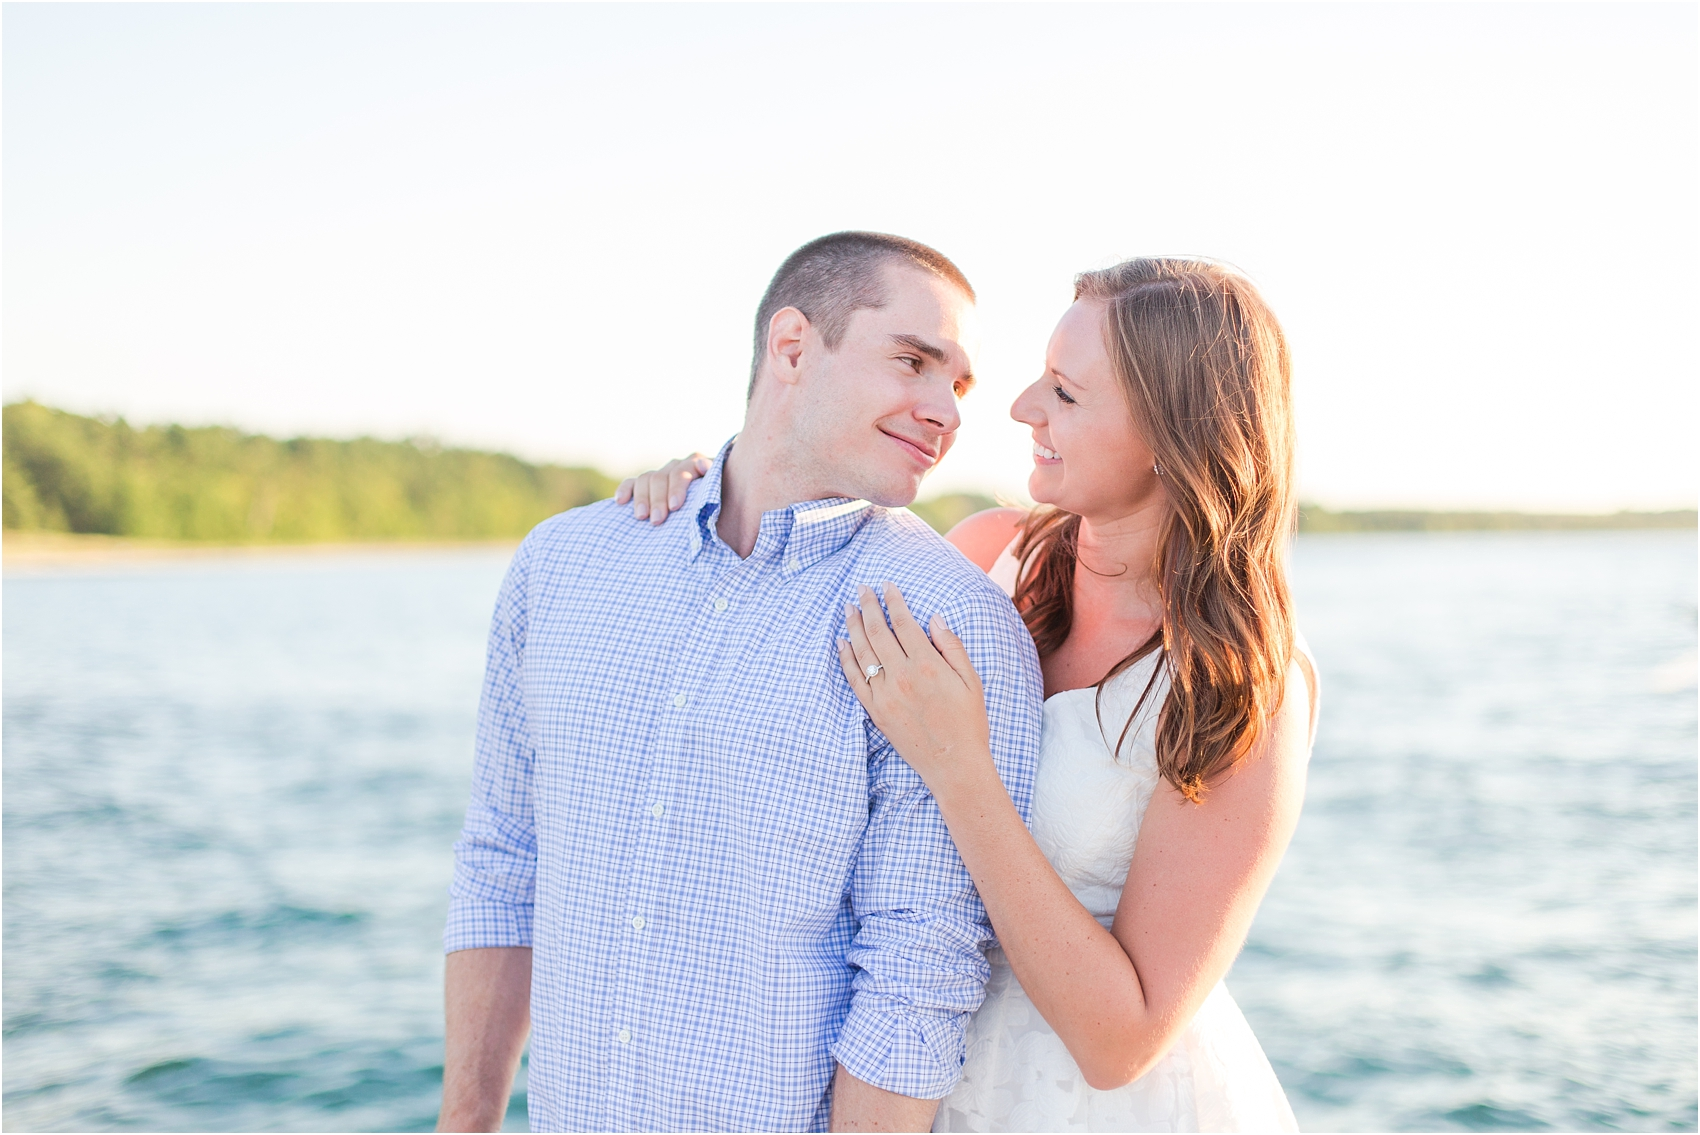 romantic-sunset-engagement-photos-at-the-lighthouse-in-charlevoix-mi-by-courtney-carolyn-photography_0014.jpg